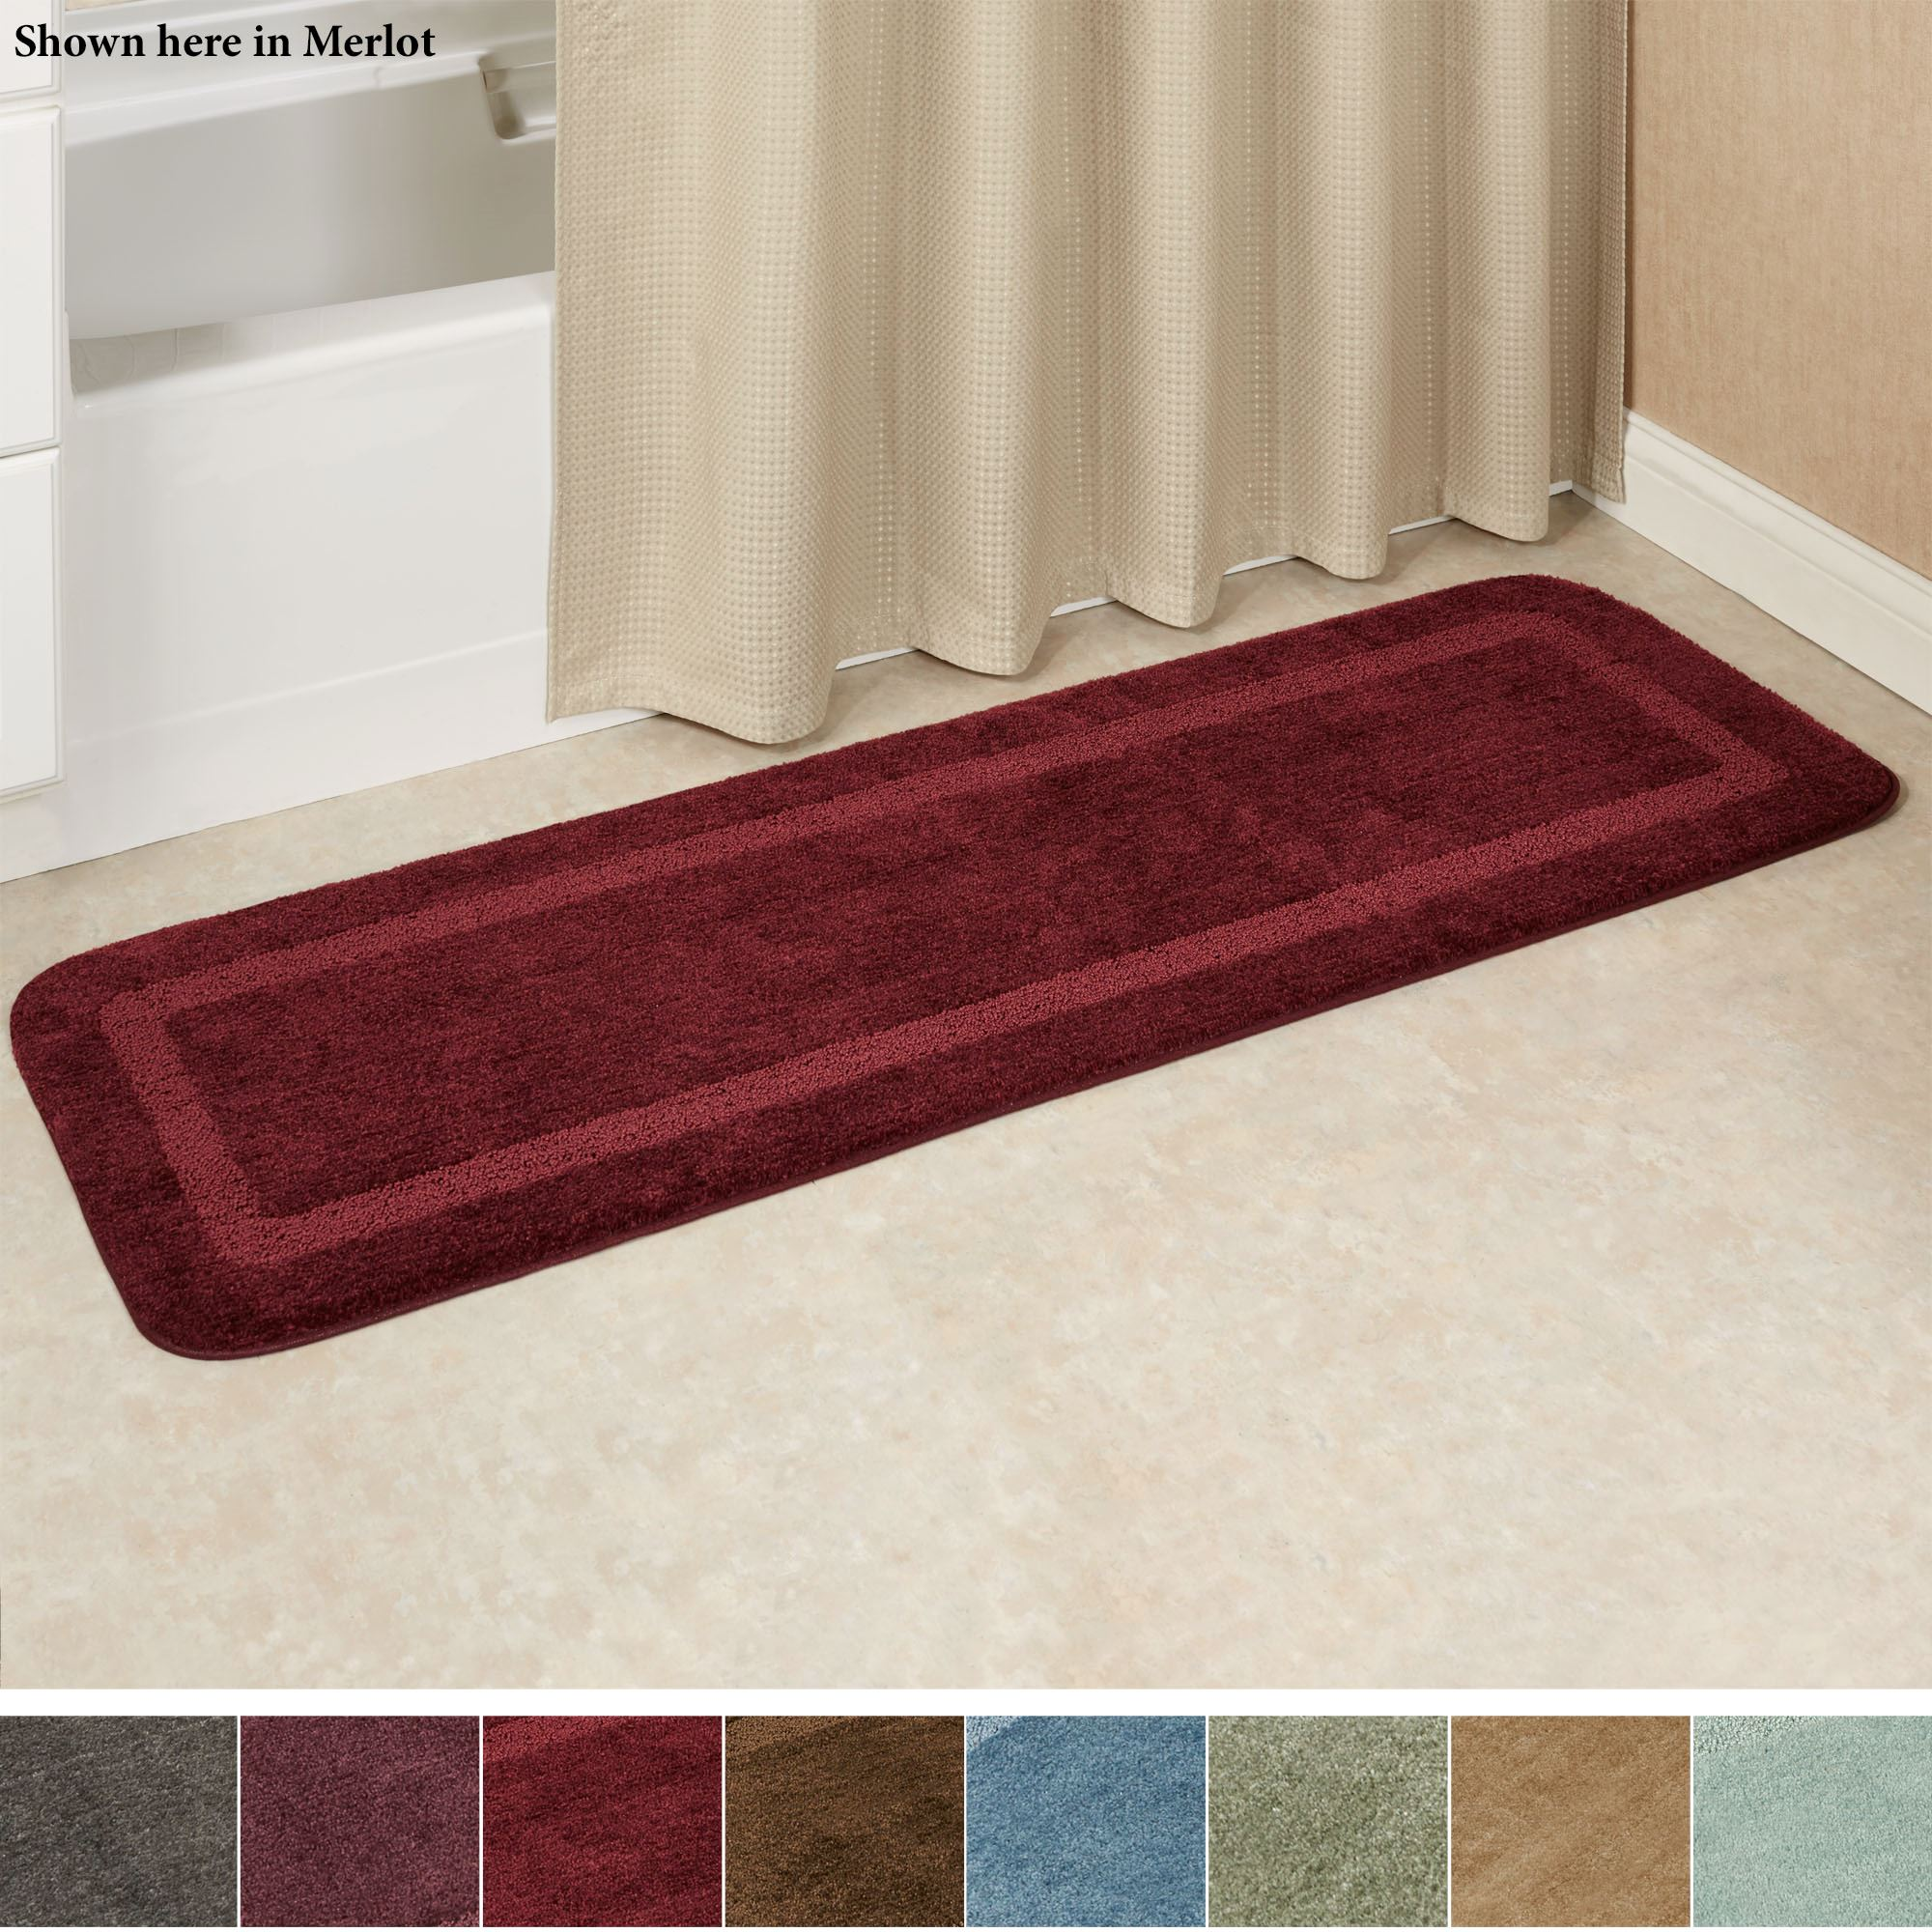 Facet Bath Rug Runner 18 x 5